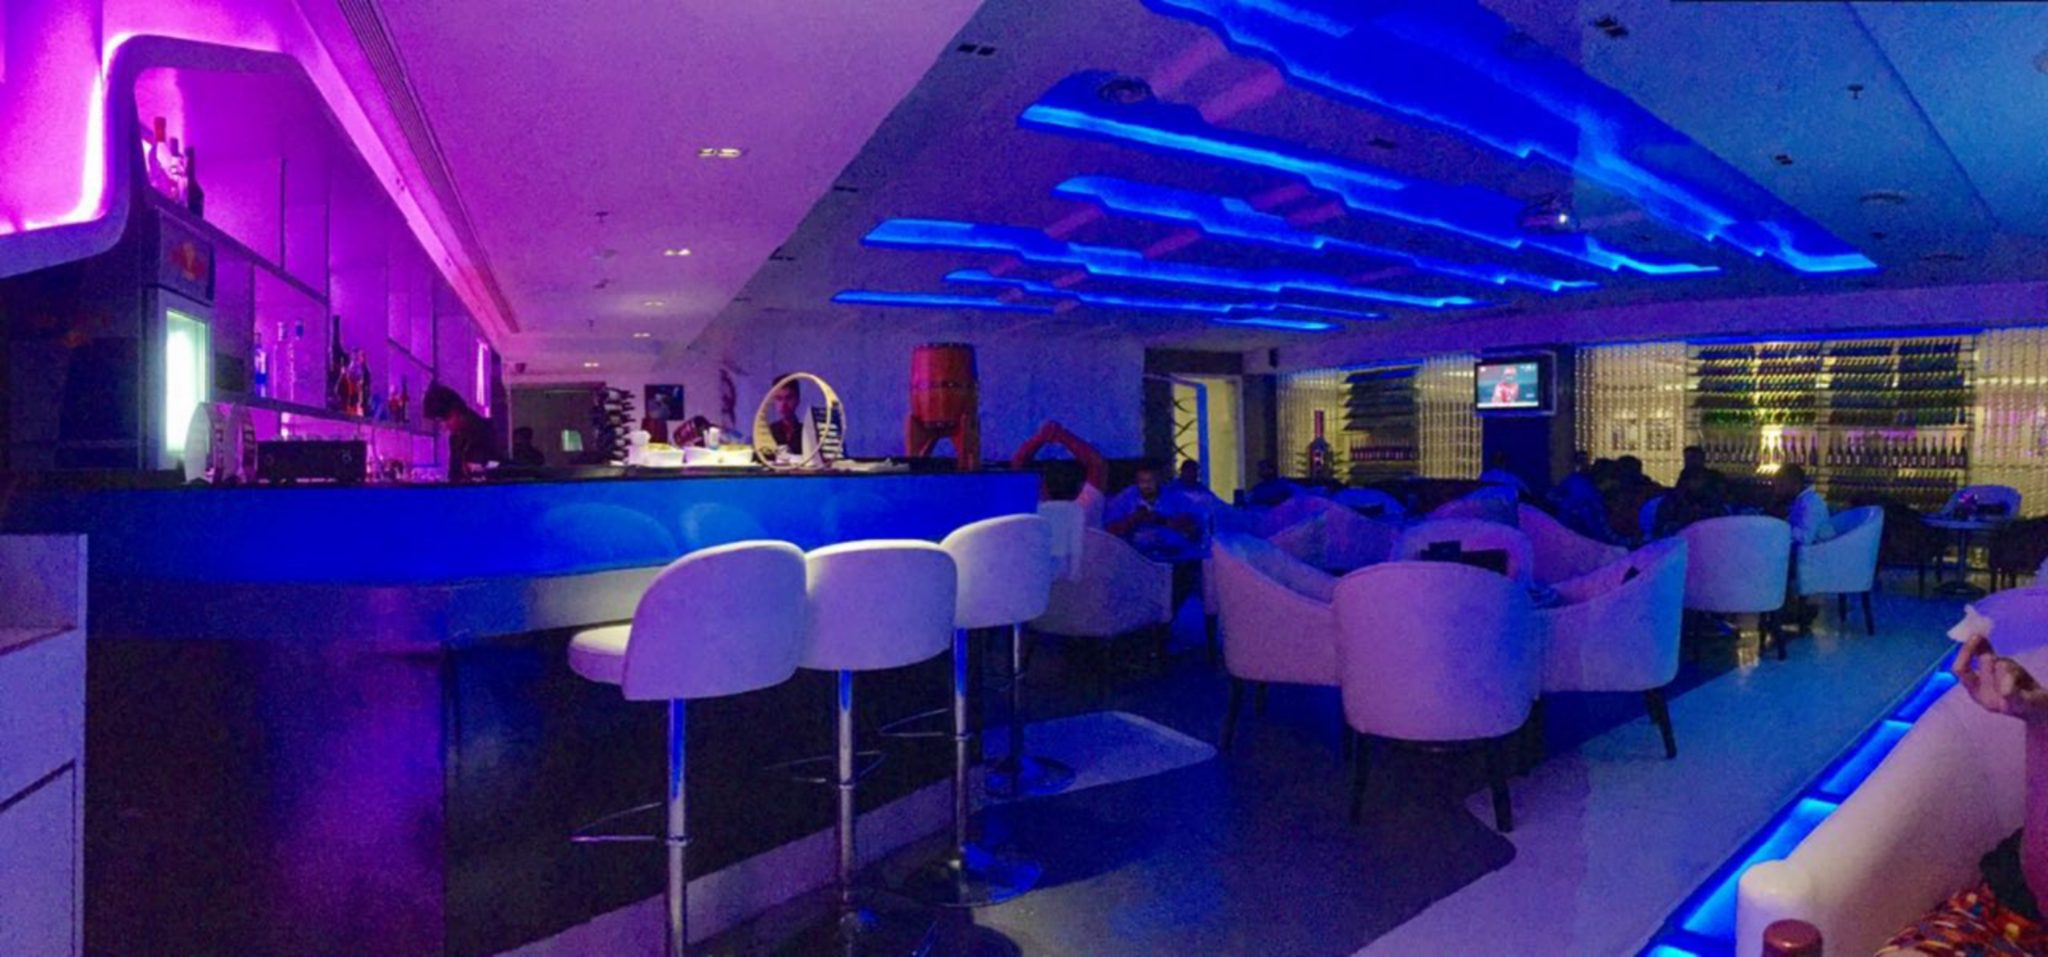 Le Bar Salon, Nashik's Neon Lounge